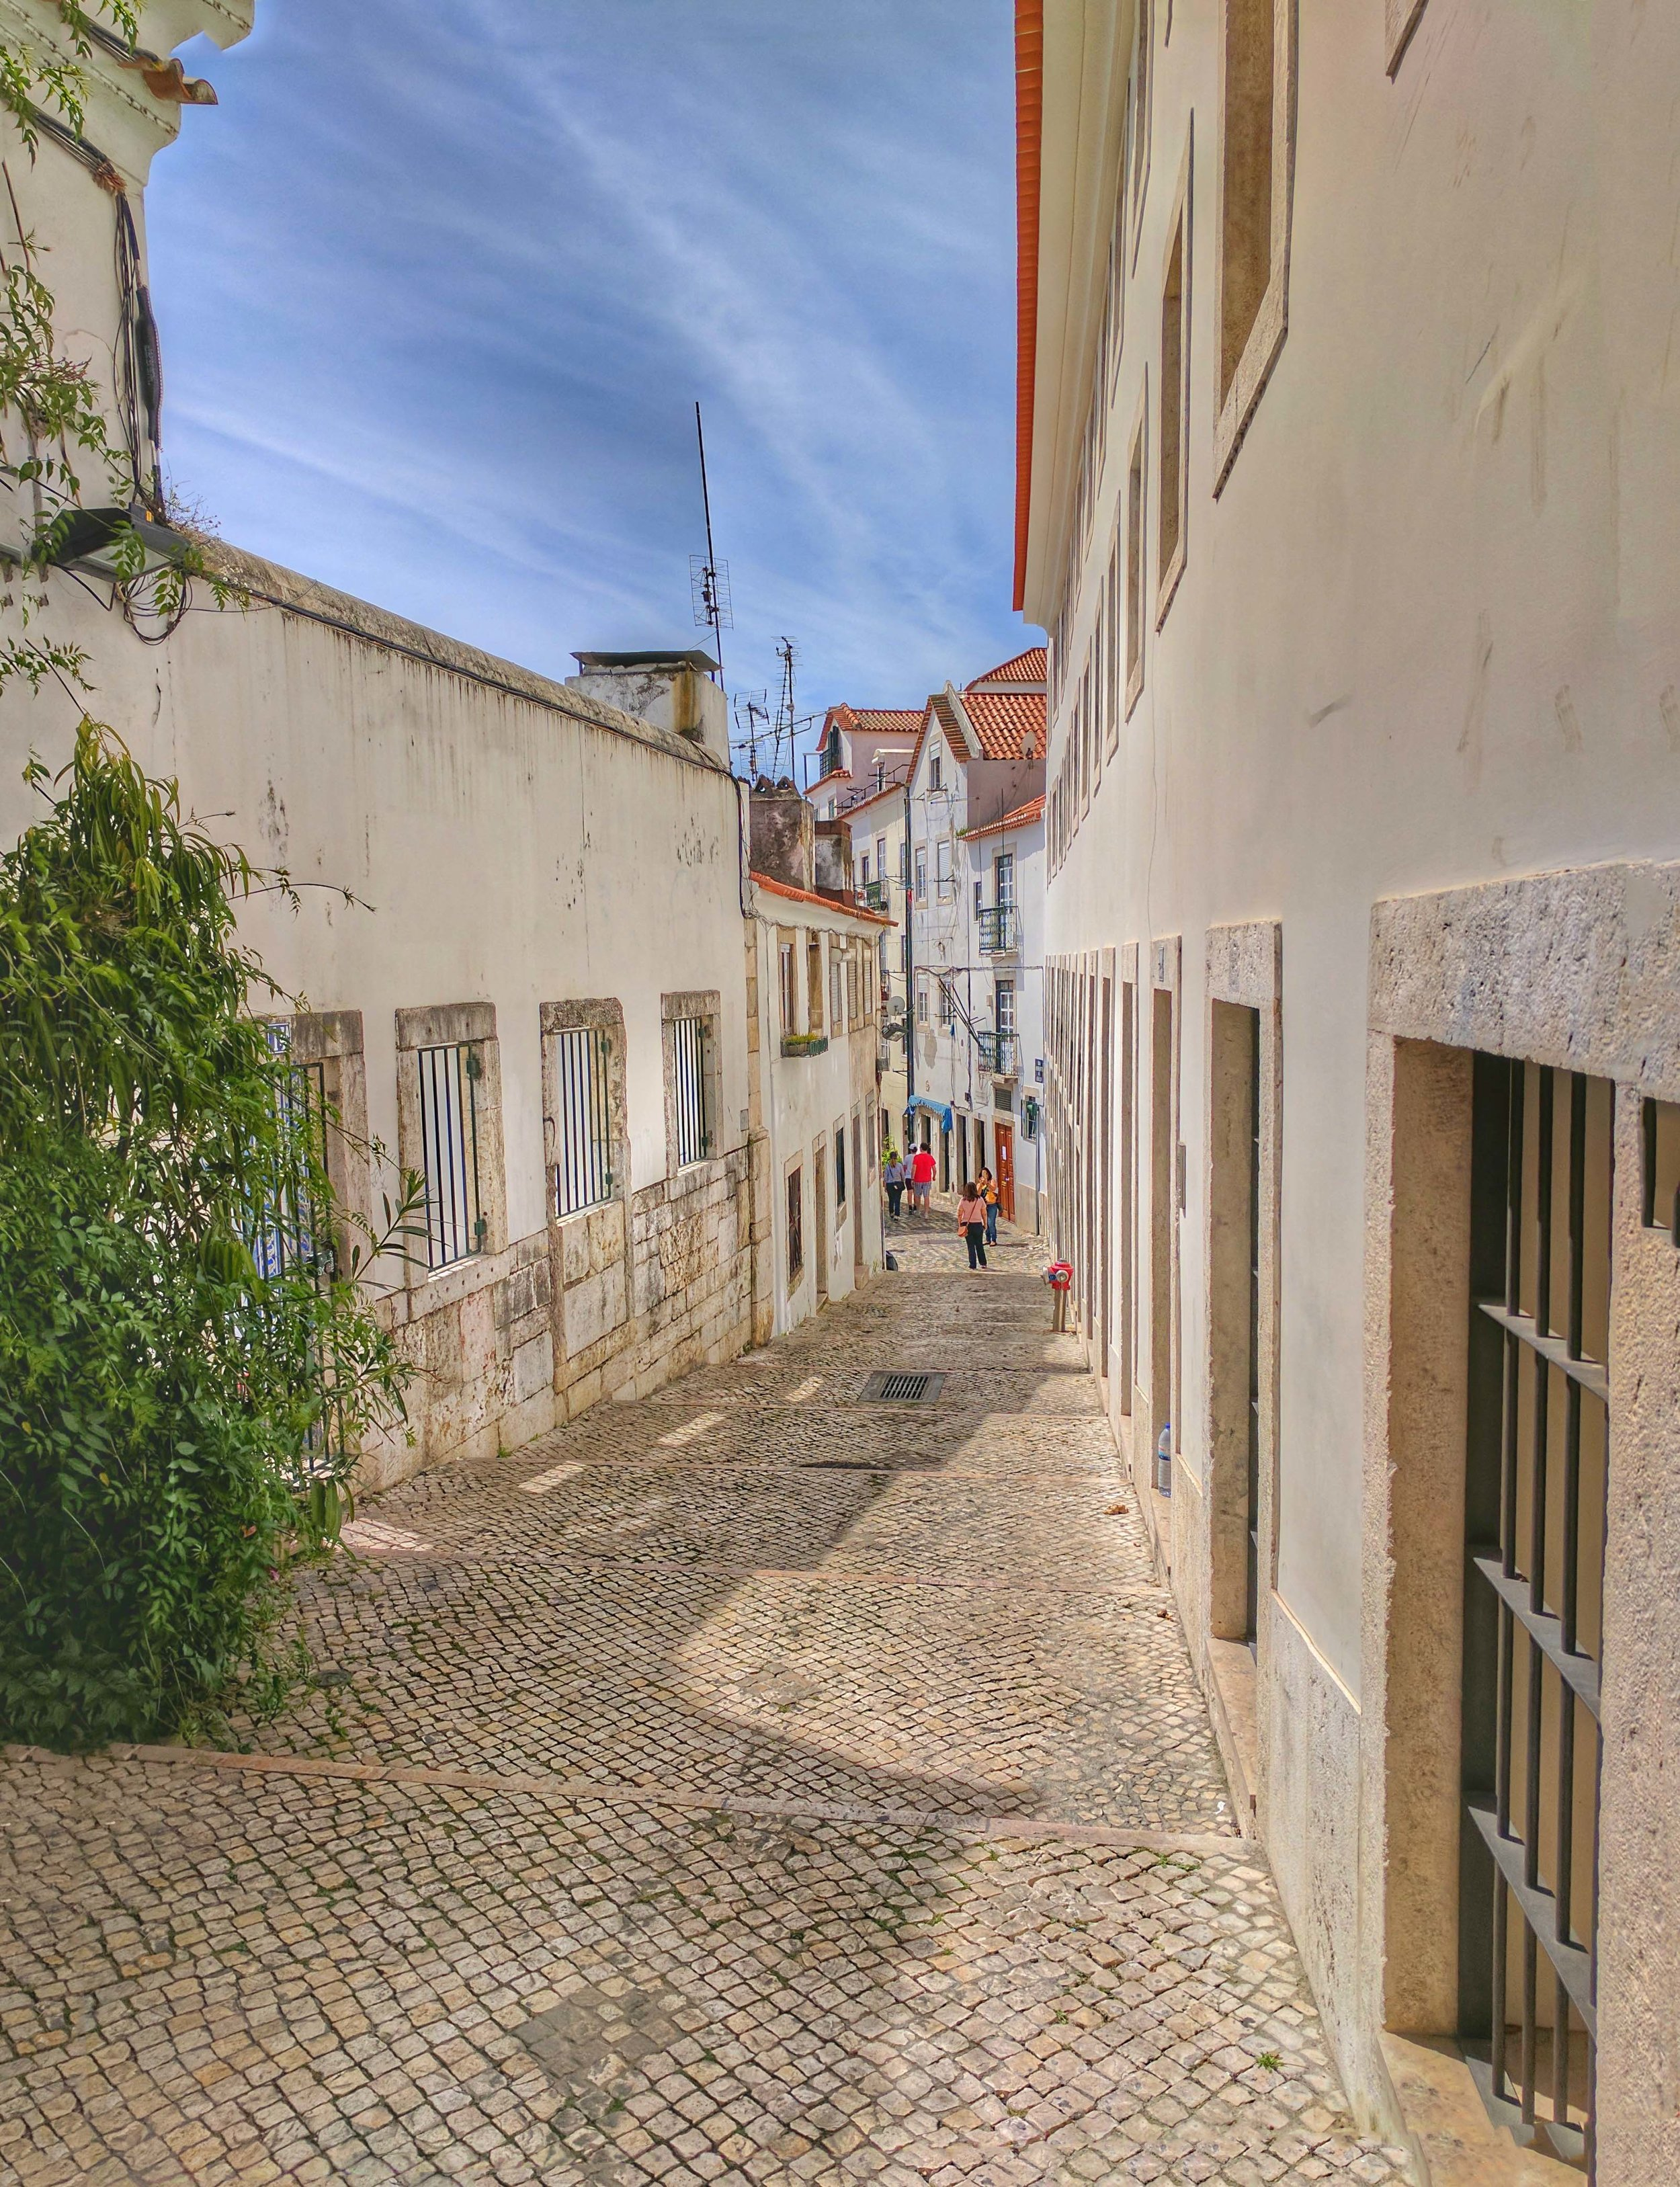 Streets of Alfama, old town Lisbon